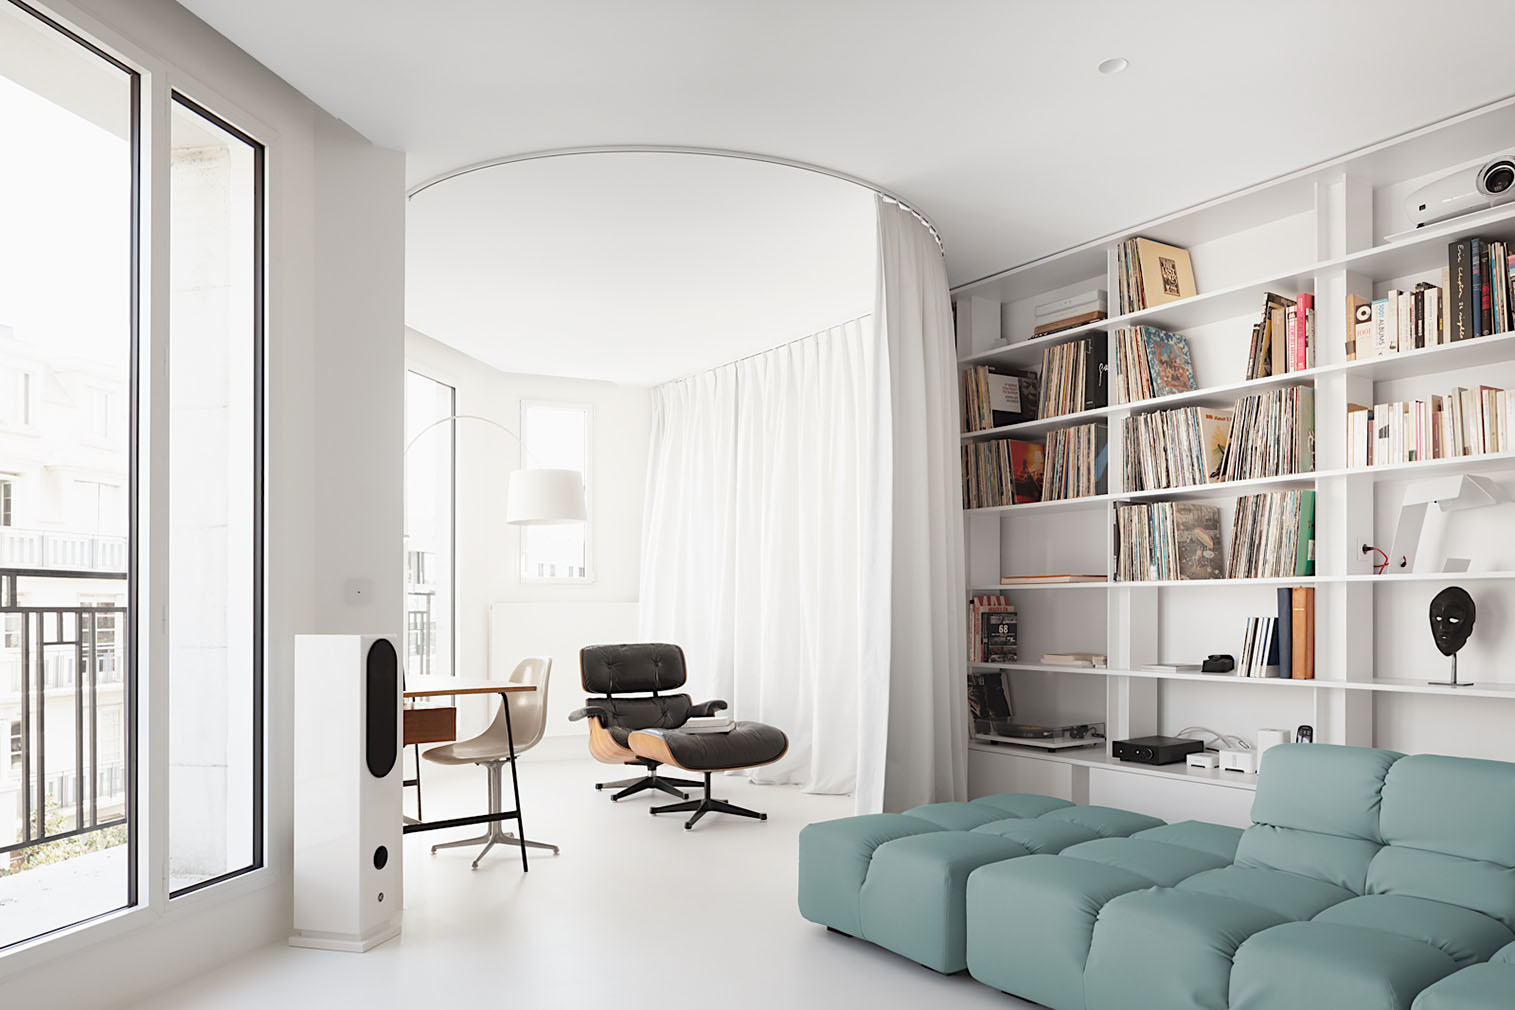 Apartment S in Paris by Heros Architecture